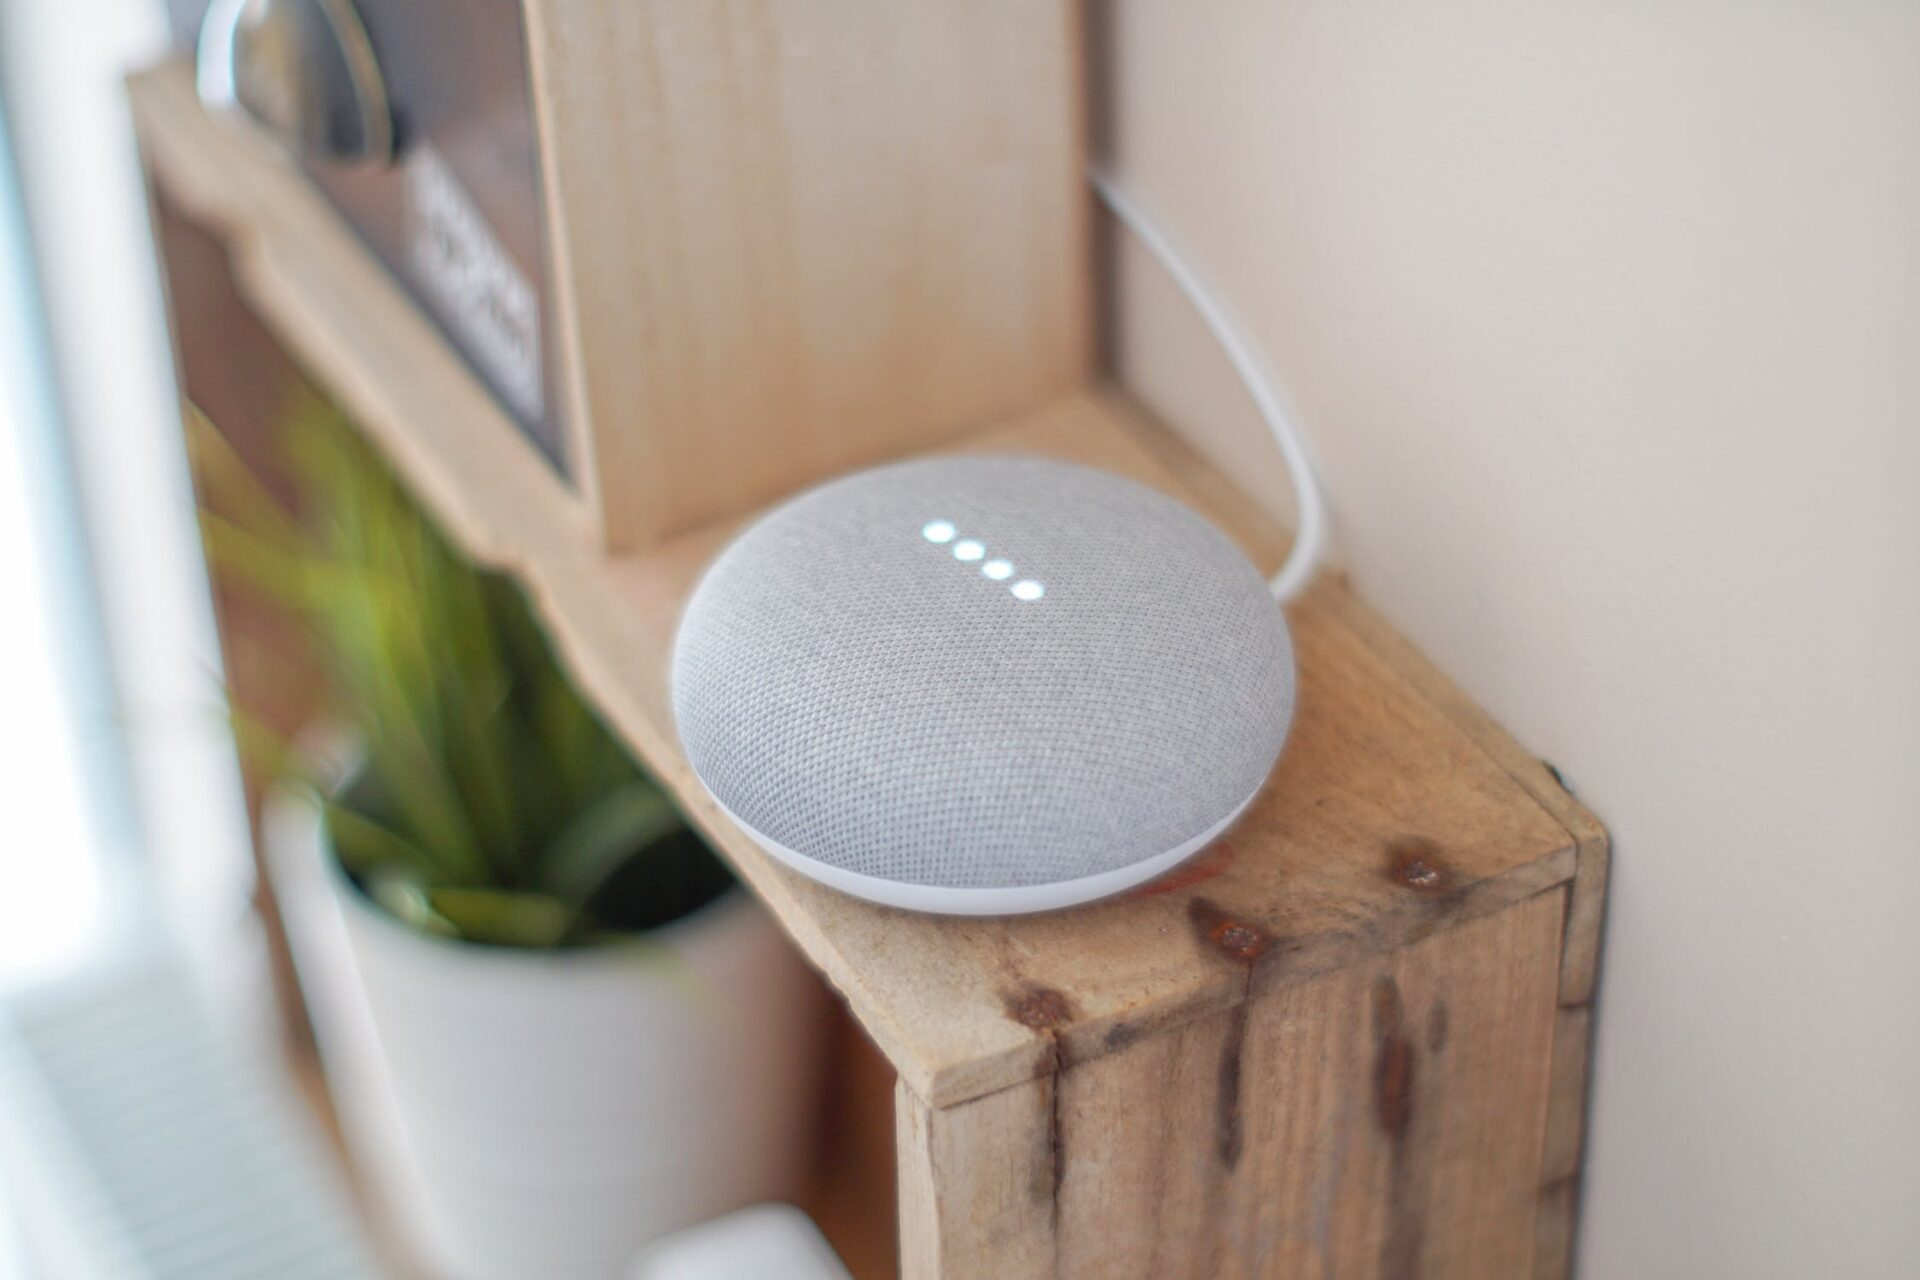 Brands are embracing the handcrafted aesthetic to make tech seem more natural. For example, Google's Home Mini speaker borrows from the appearance of pebbles | The Augmented Human | SPACE10 | STIRworld